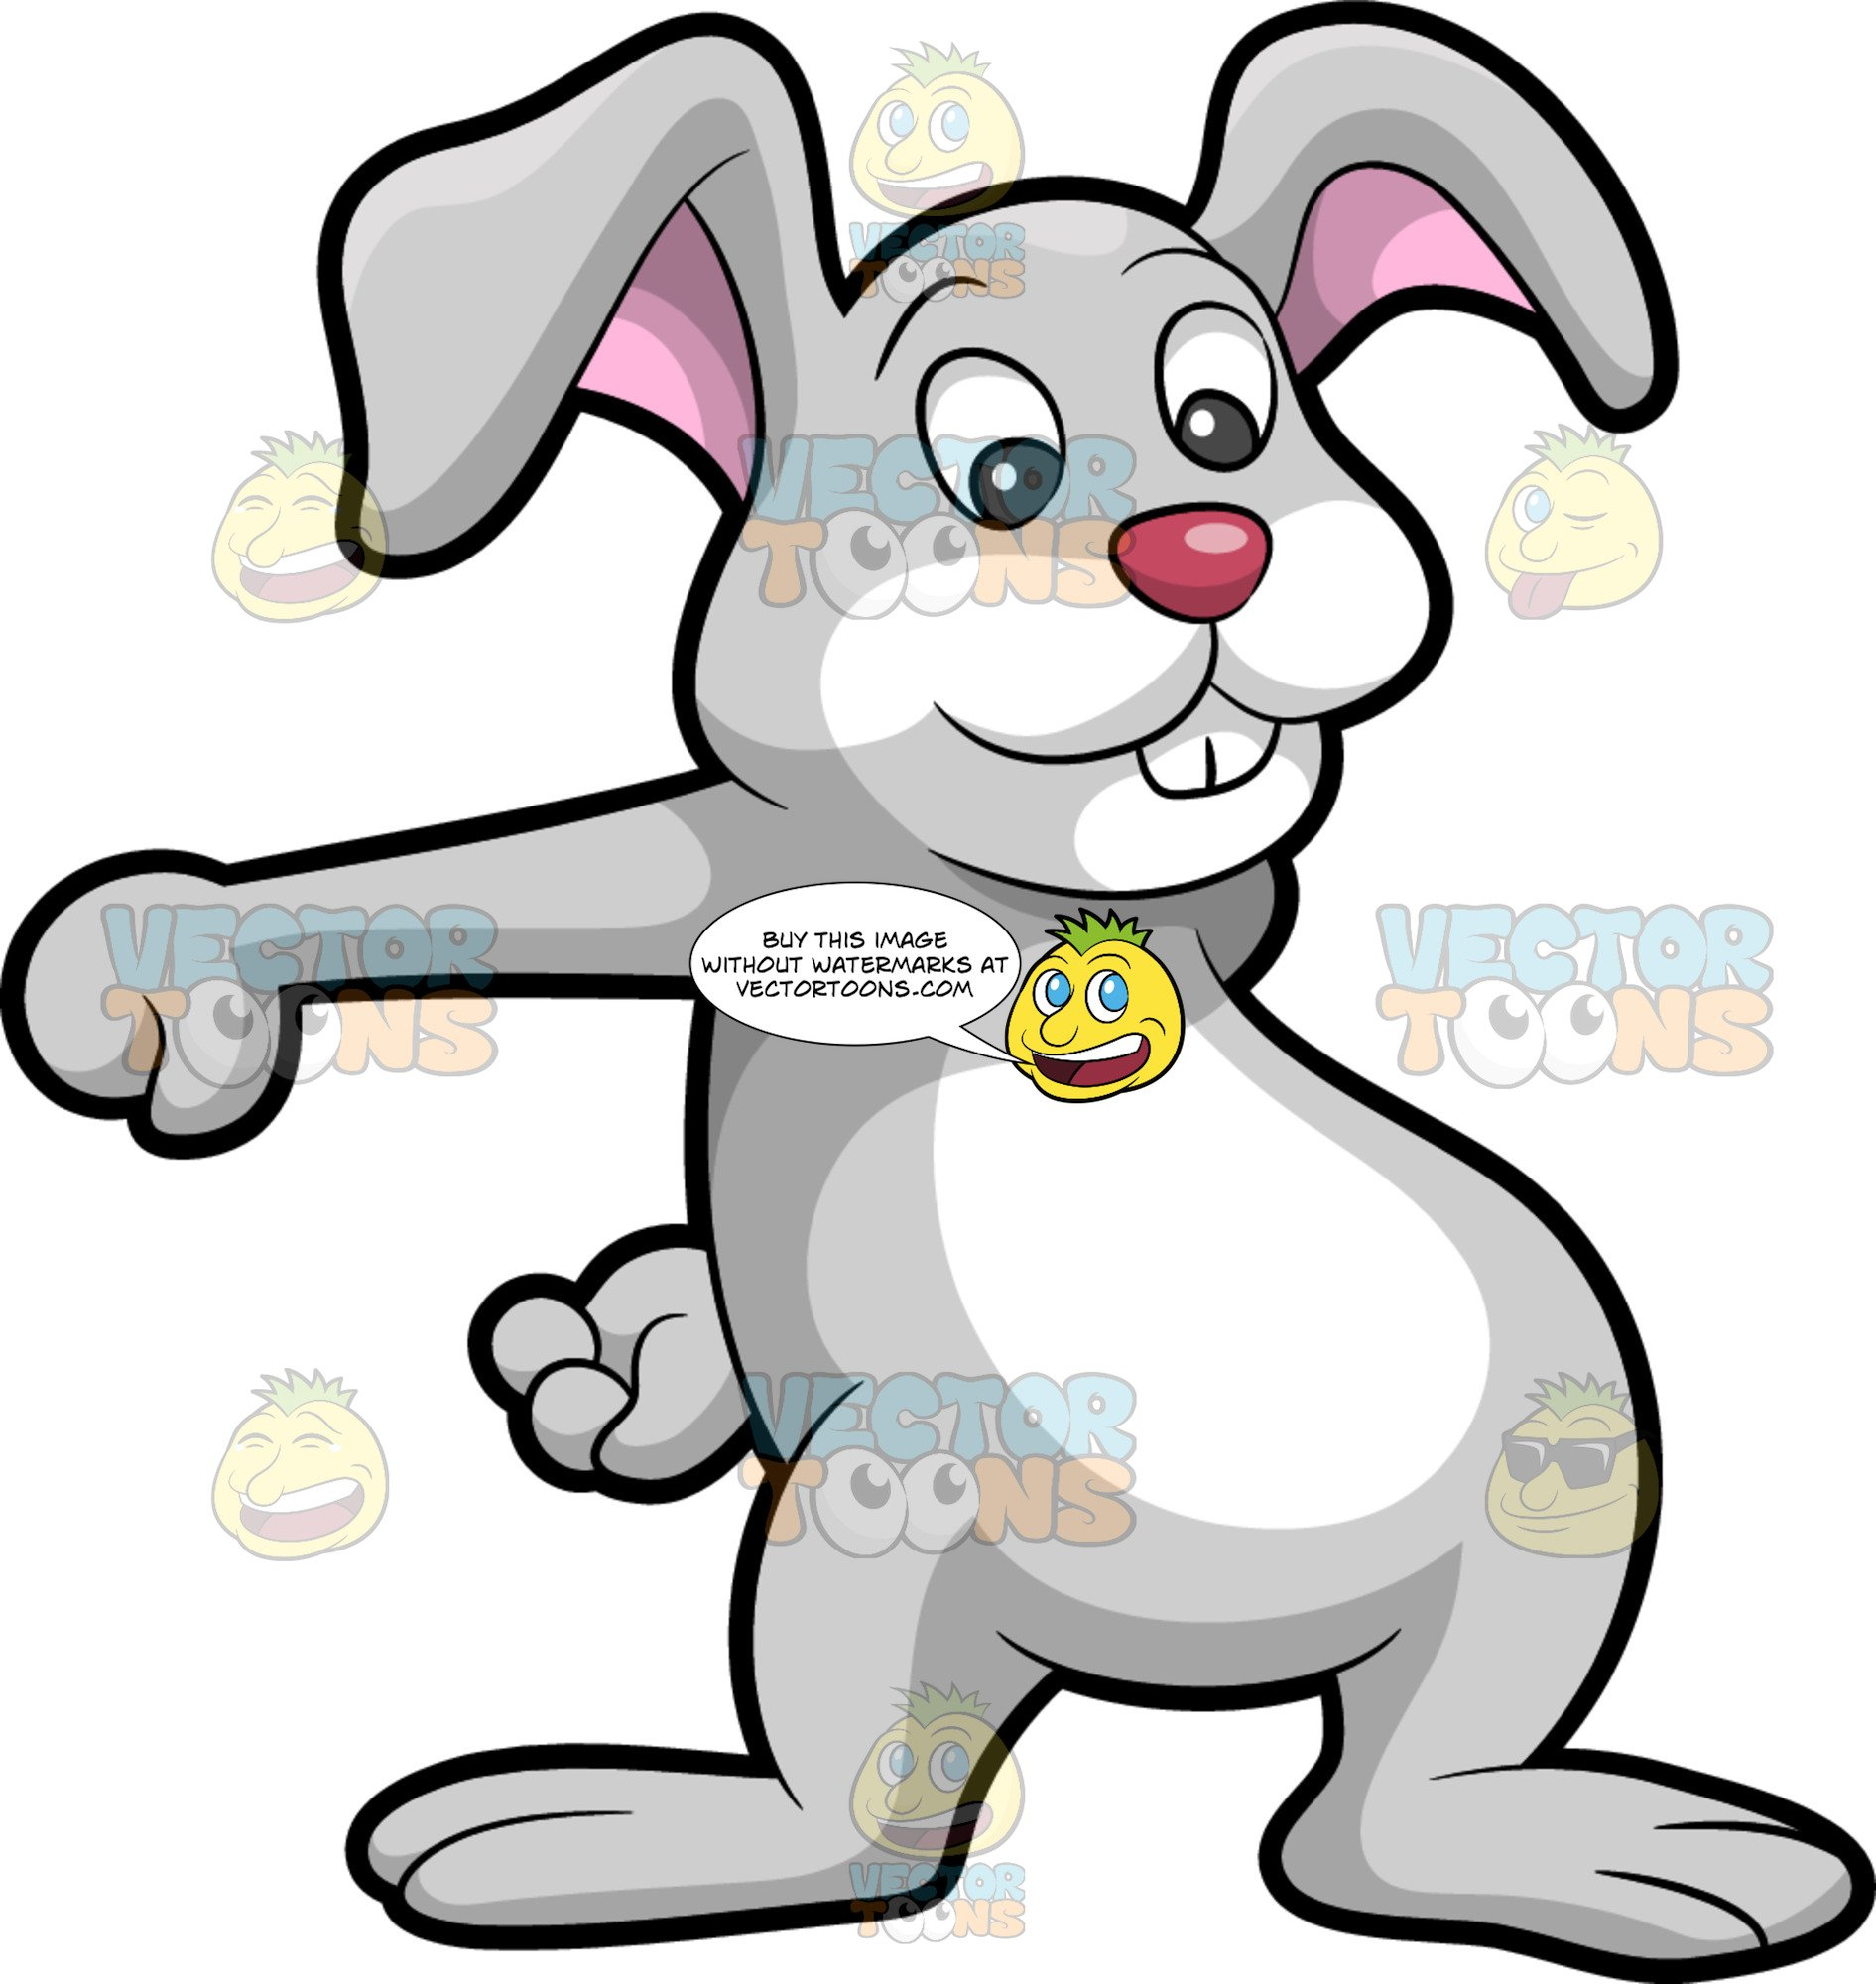 Flossing clipart vector The Easter Bunny Dancing The Floss vector